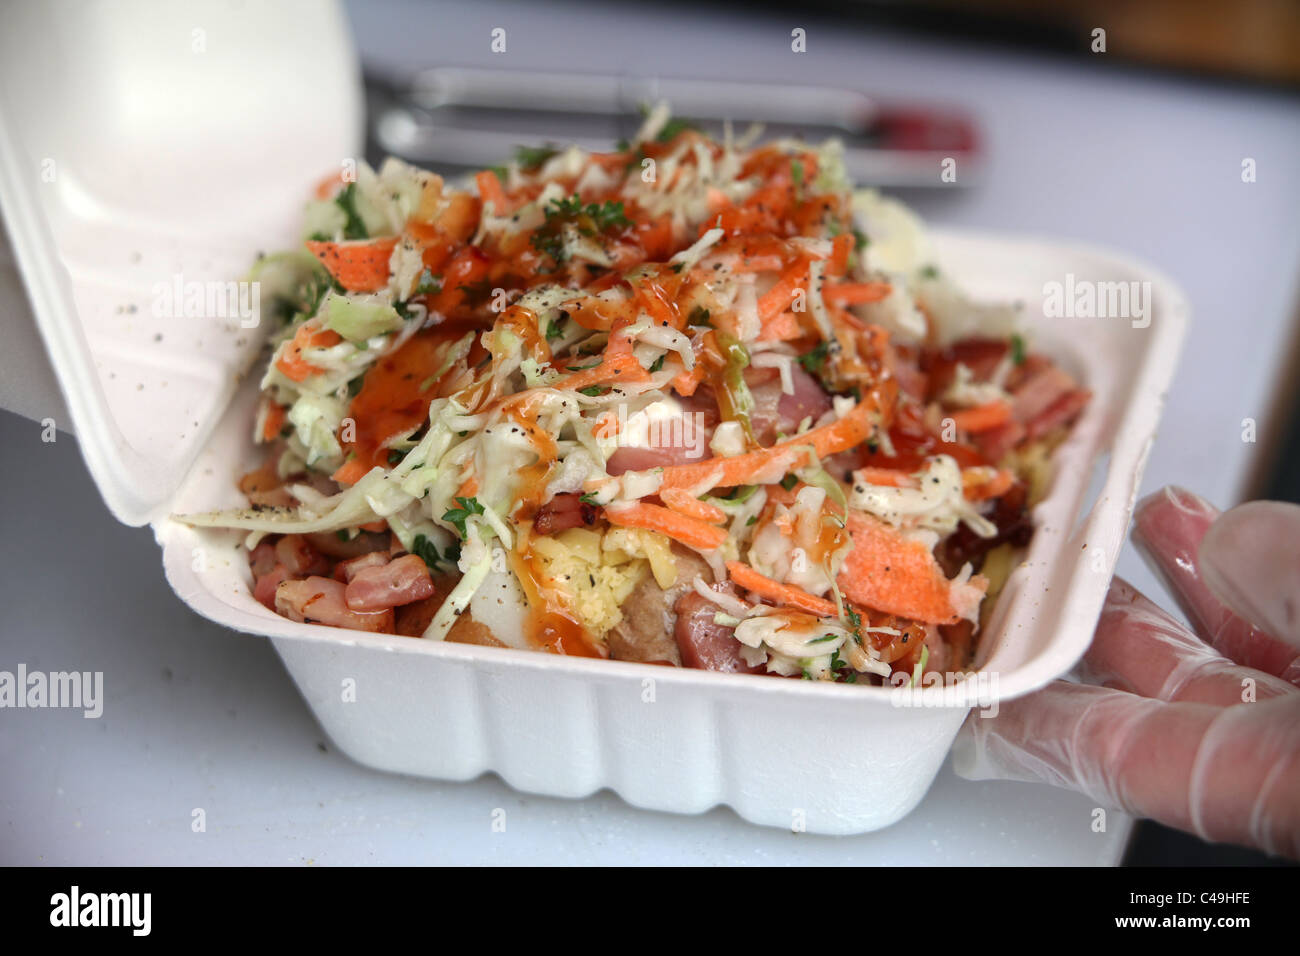 baked potato under salad and bacon in polystyrene packaging box - Stock Image